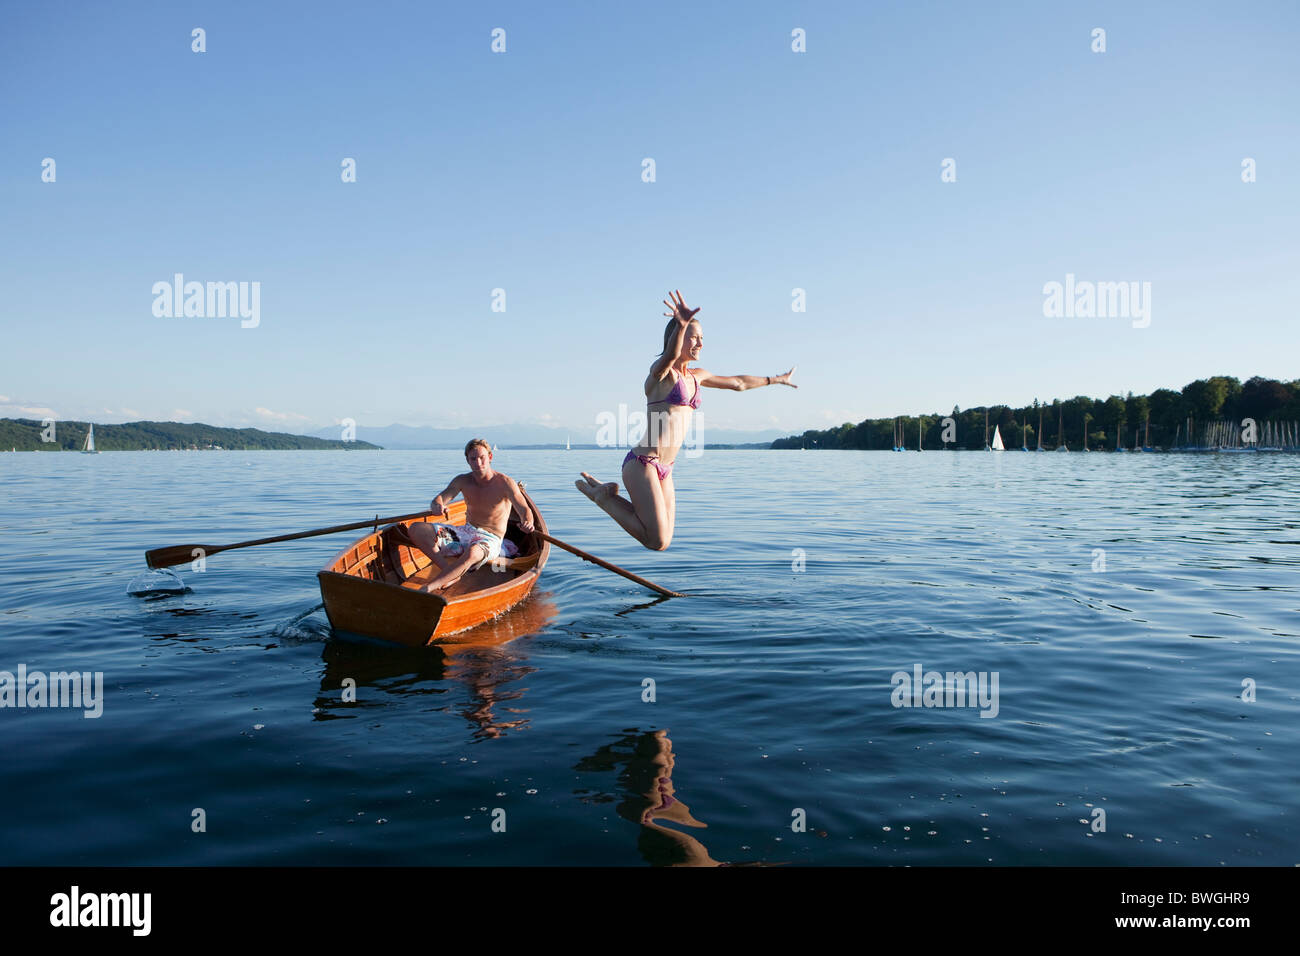 Young woman jumping off a row boat - Stock Image